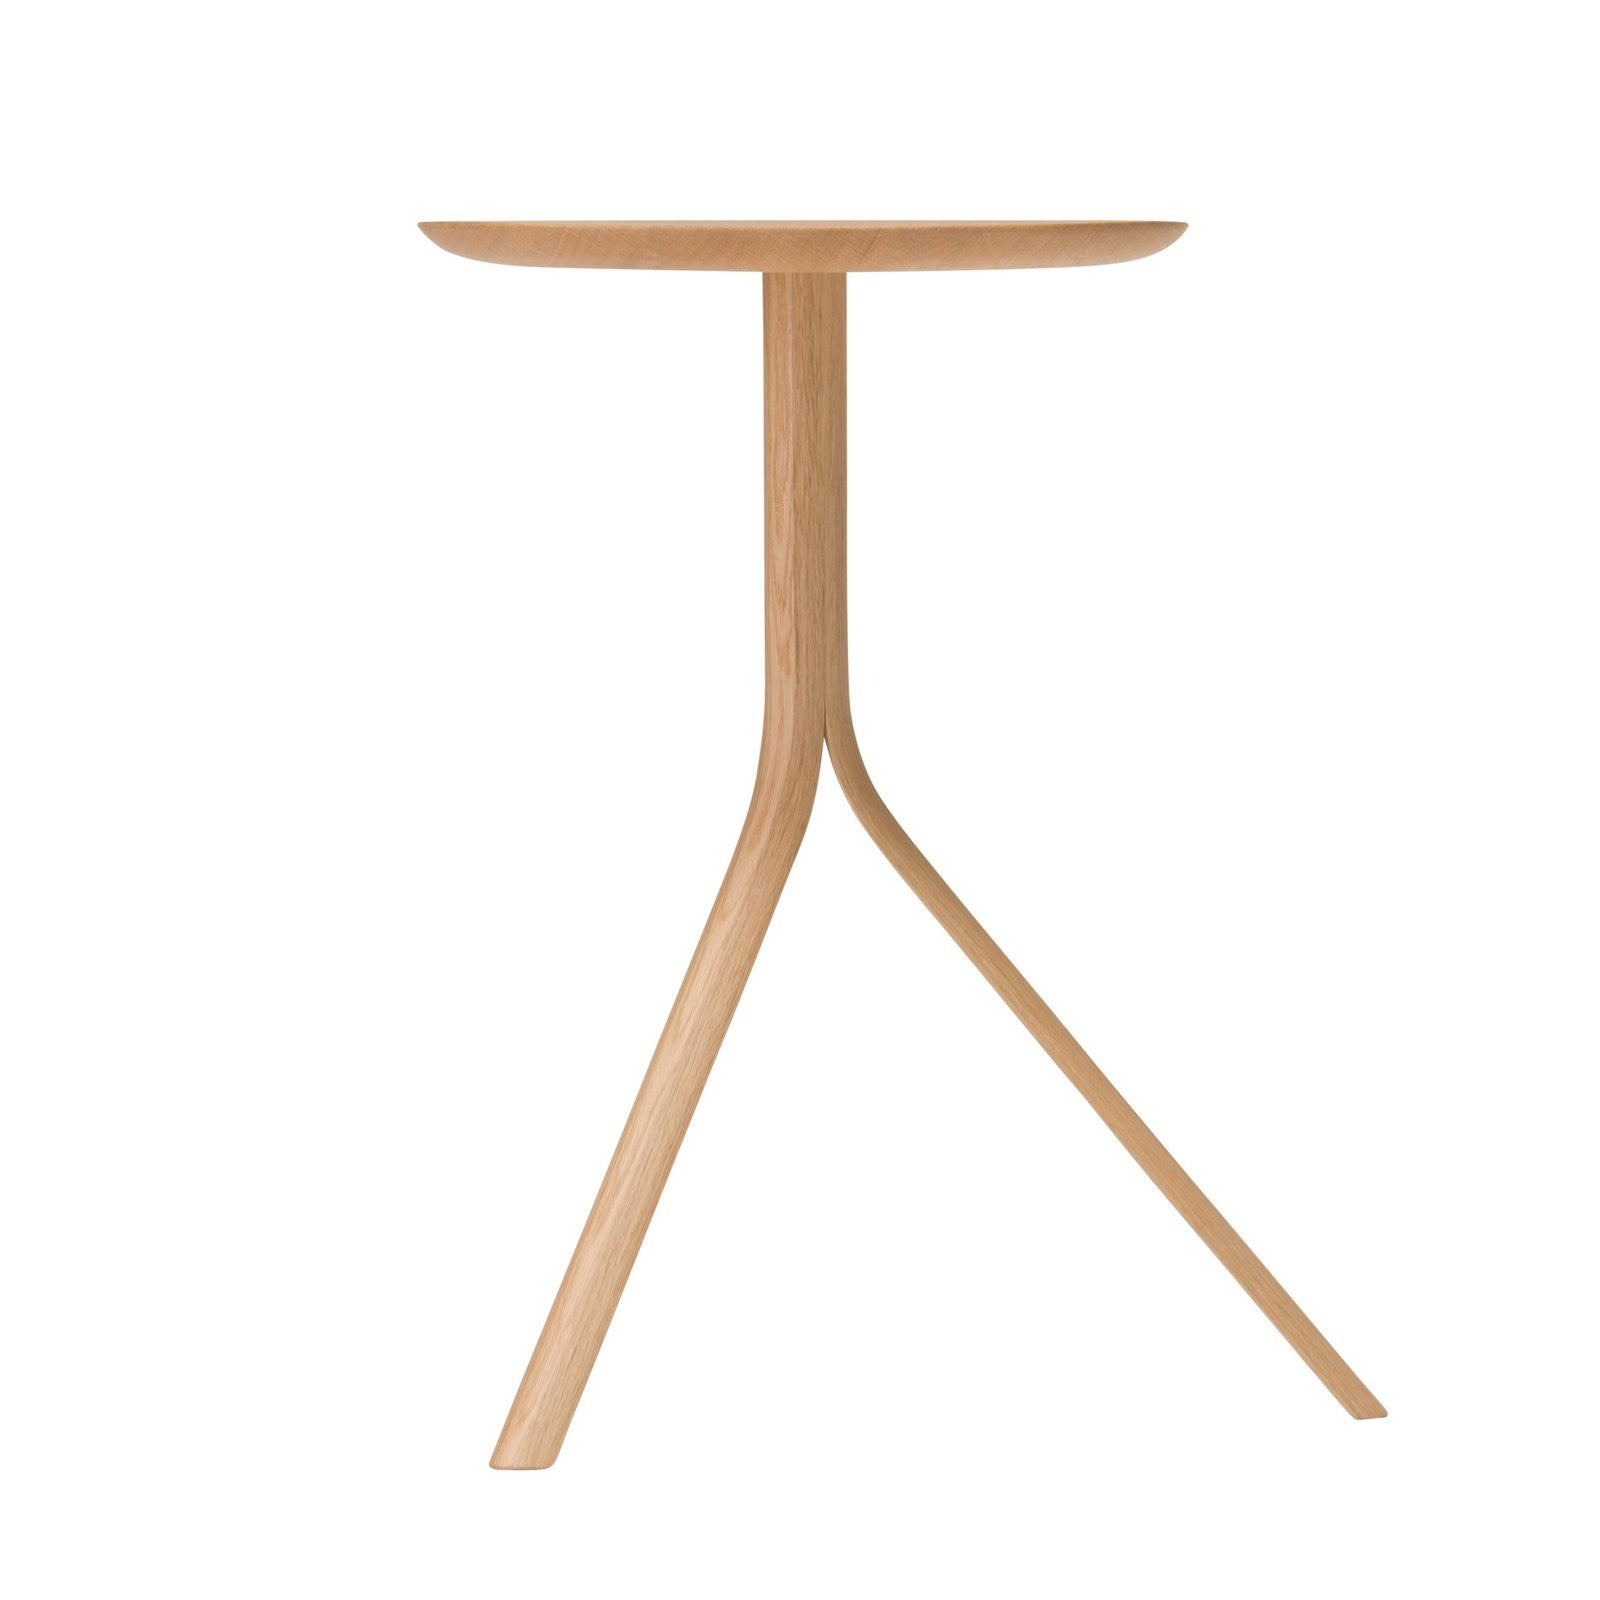 Splinter Coffee Table 35H